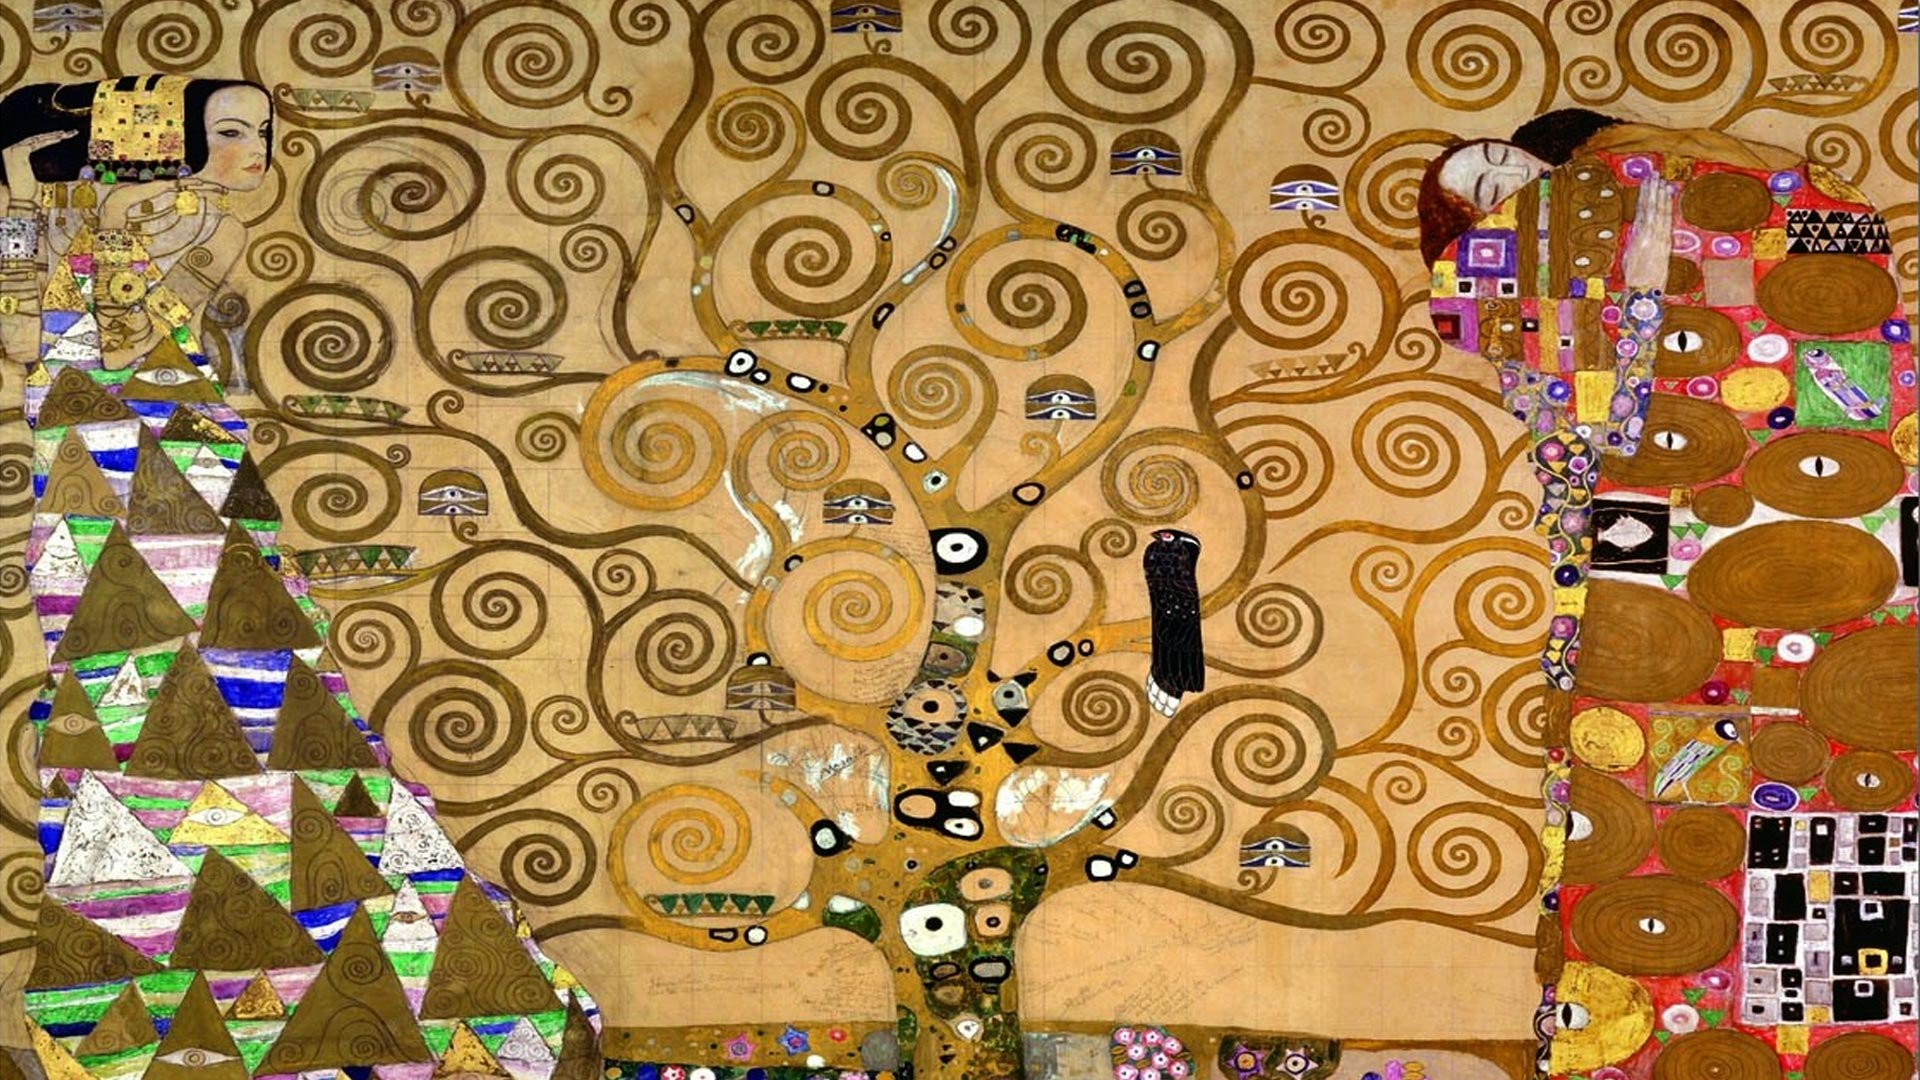 1920x1080 a Gustav Klimt wallpaper background symbolizing the design excellence of  Fred Fioto a Hocking Hills Website